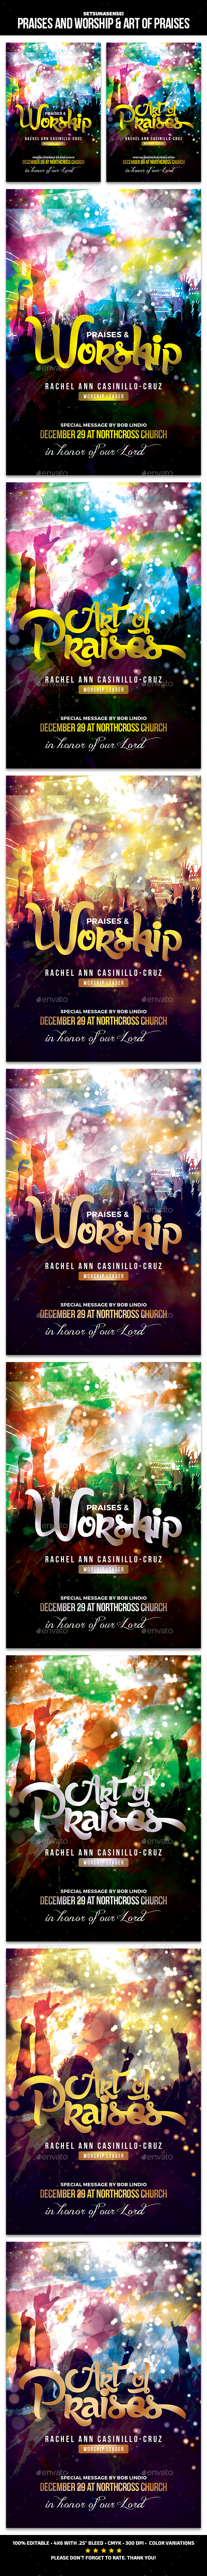 Praises and Worship & Art of Praises Church Flyer - Church Flyers